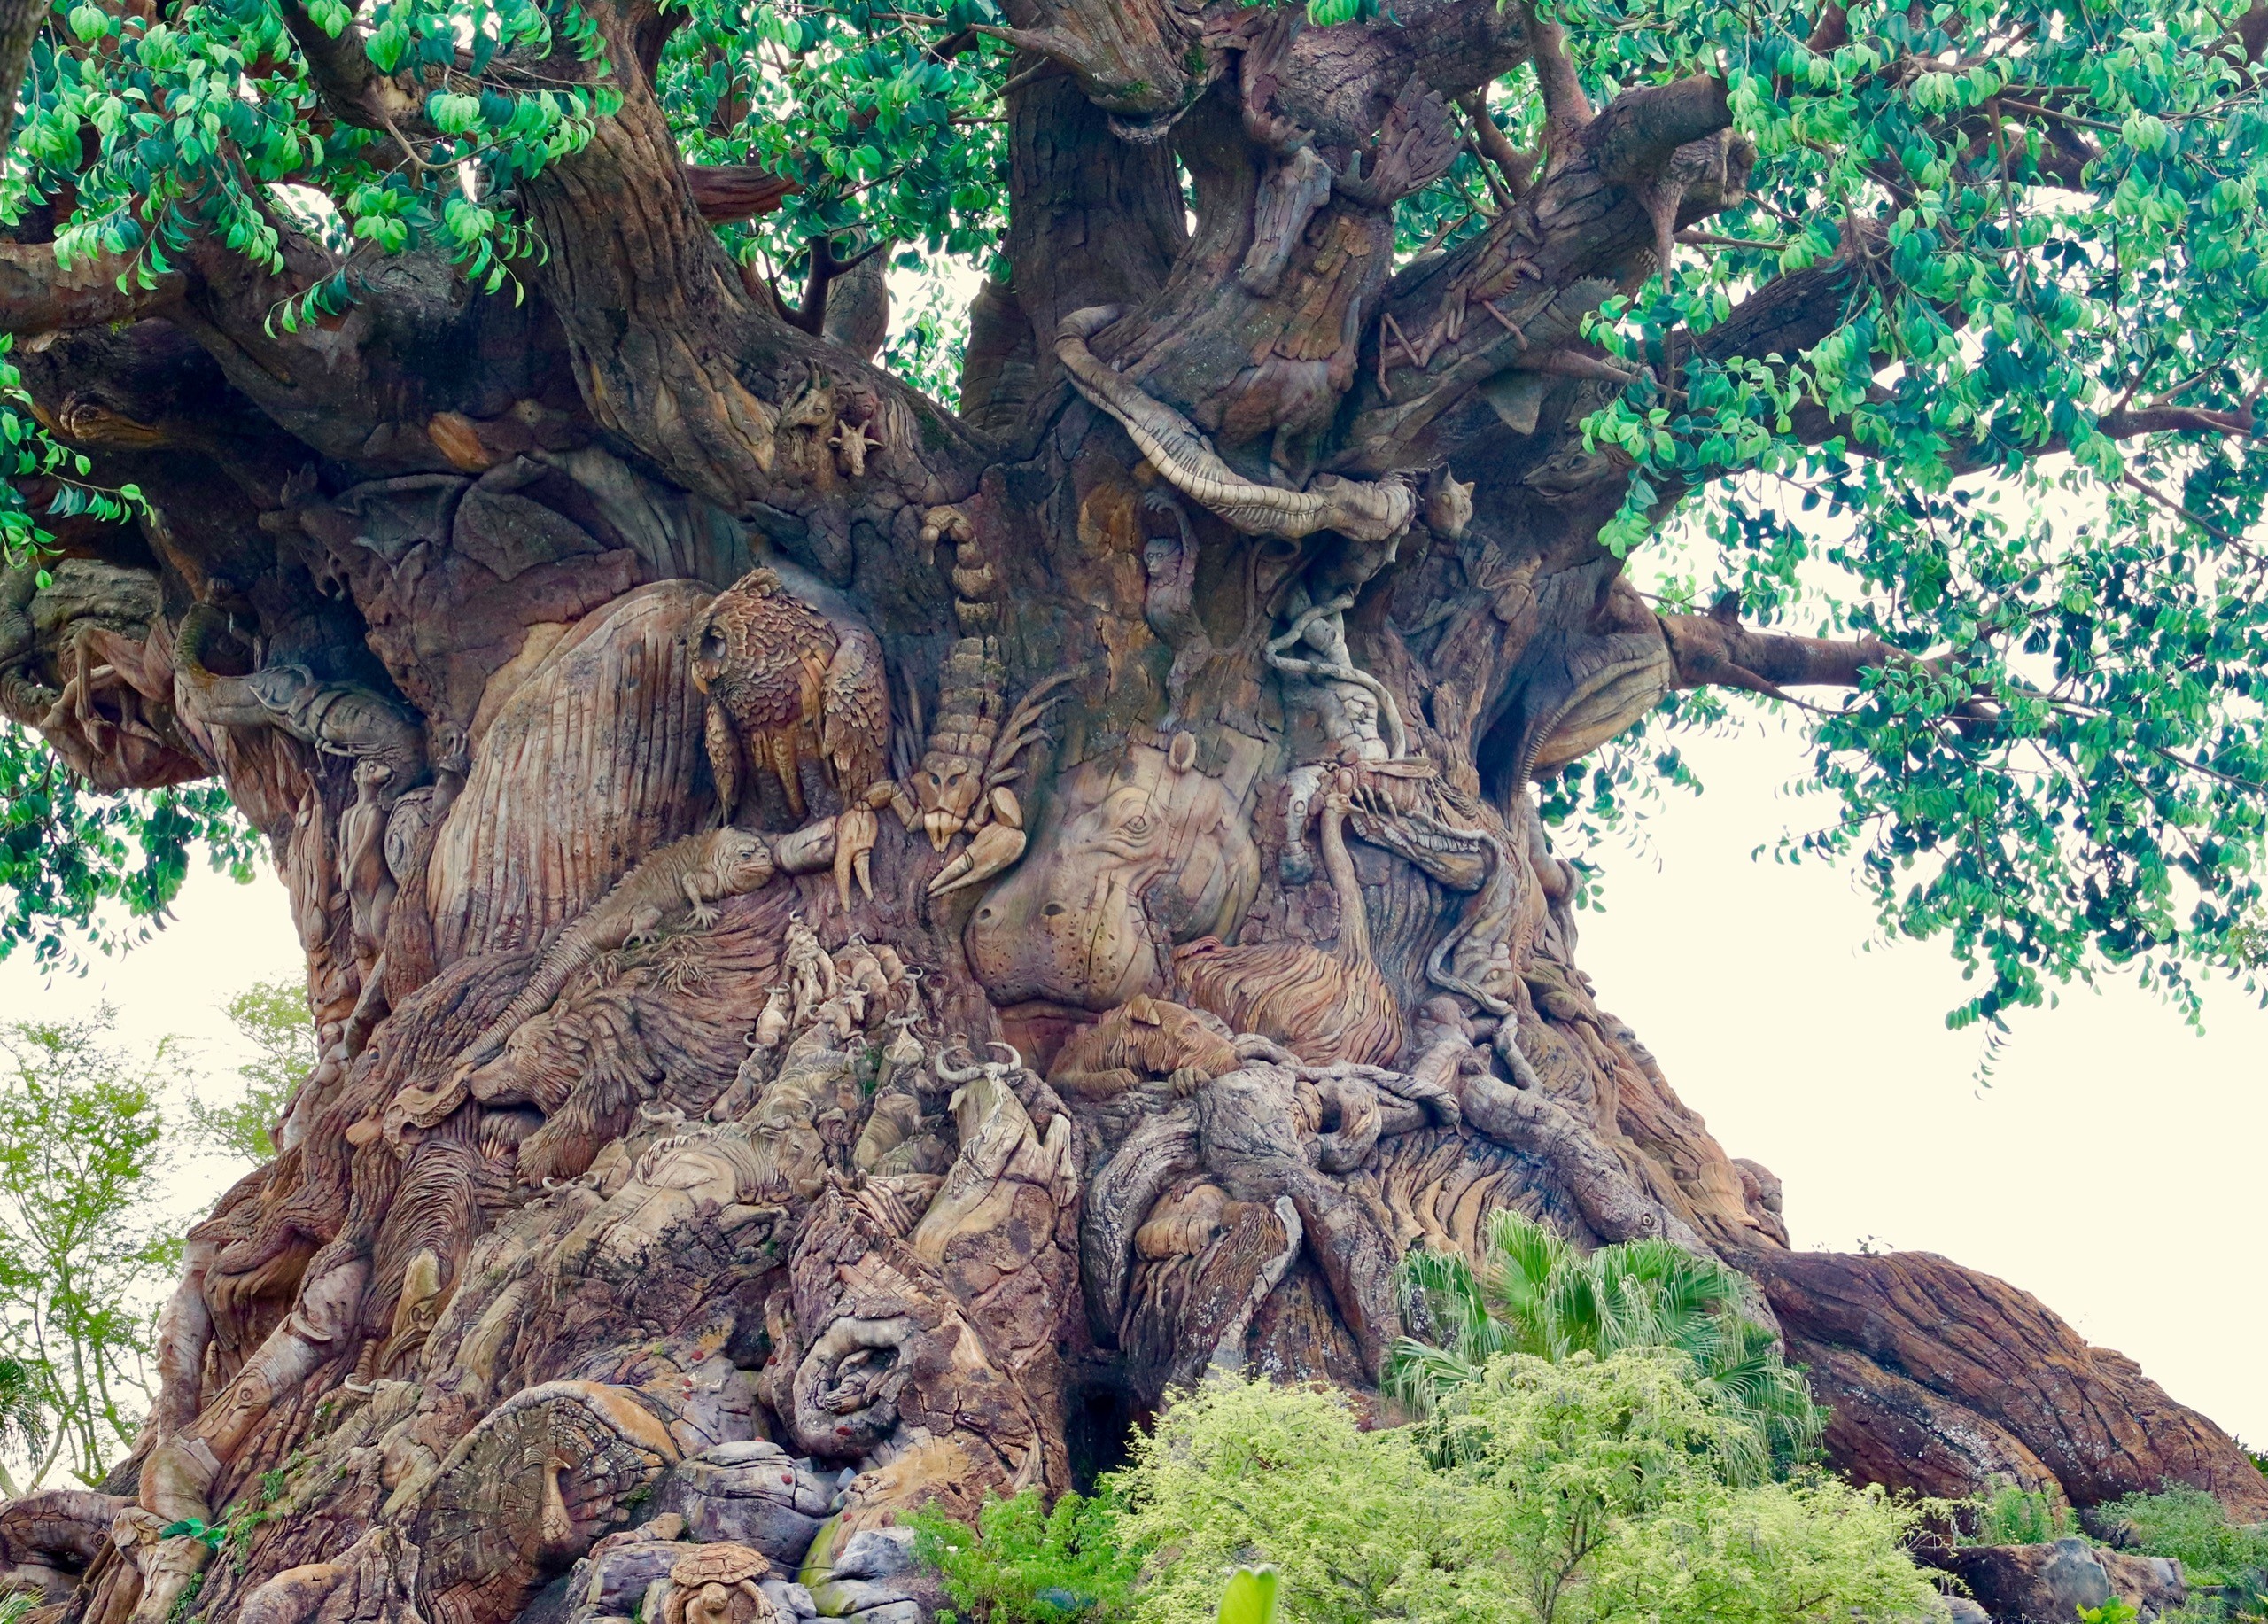 The tree of life in Animal Kingdom at Walt Disney World. Hundreds of animals are carved into a manufactured tree. There is a scorpion, hippopotamus, and owl, among many others.